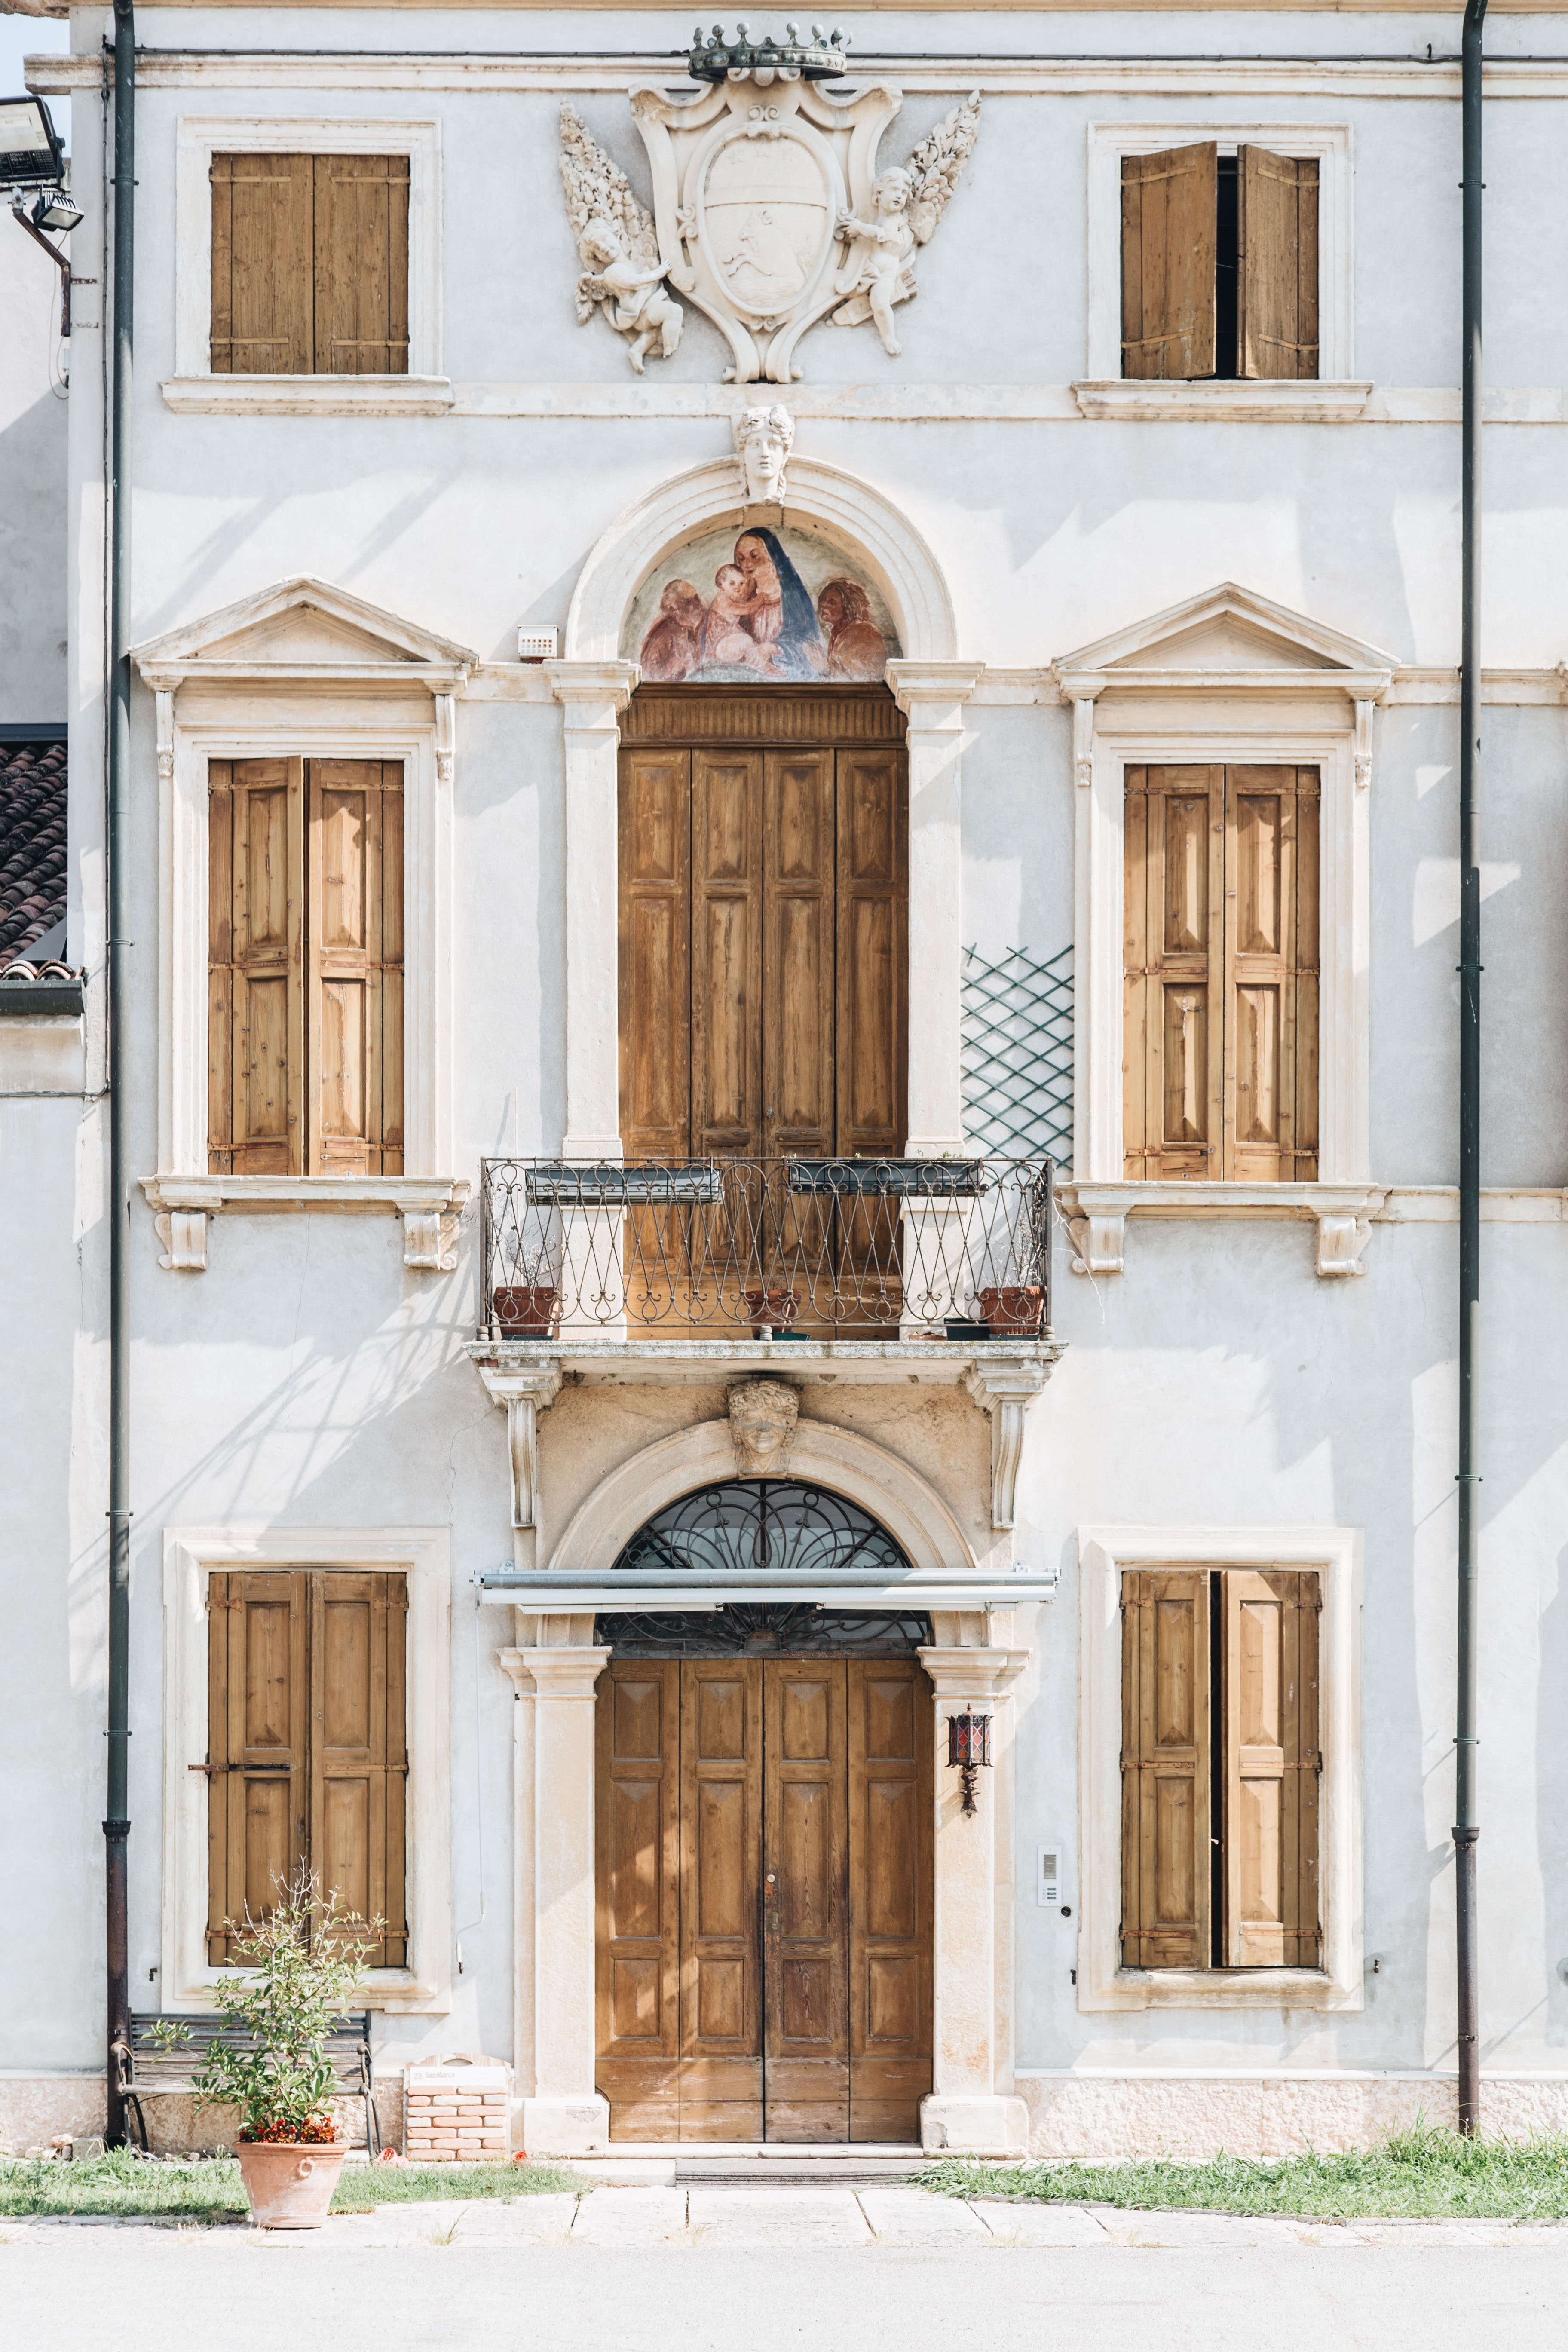 white concrete building with wooden doors and windows